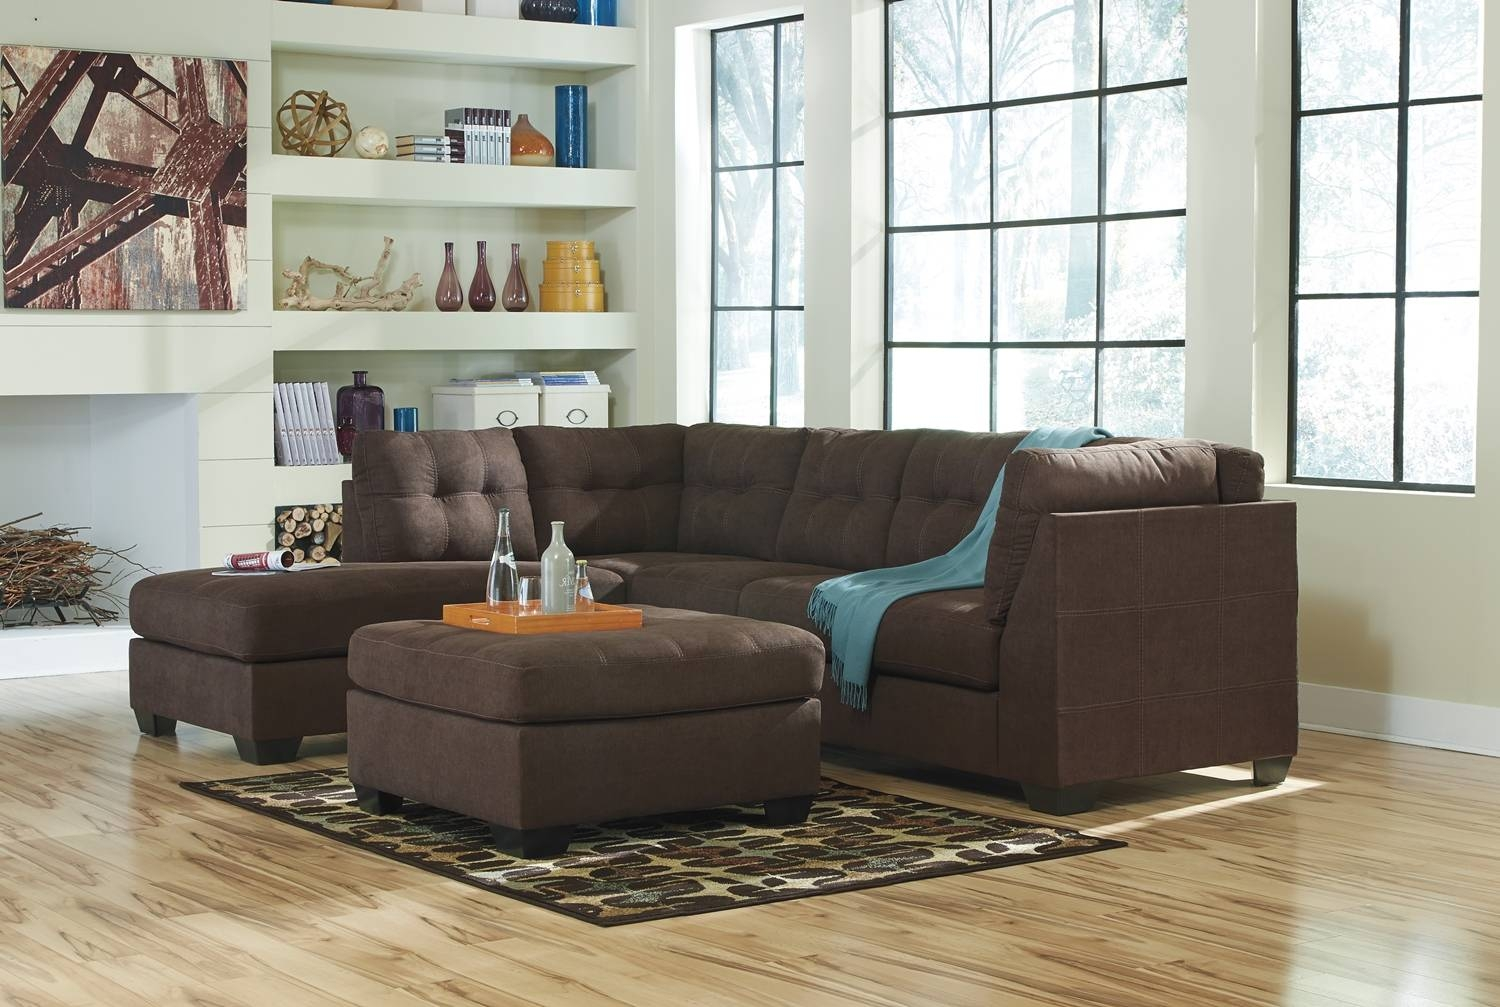 Ediscountfurniture - Discount Furniture With Free Delivery In with regard to Closeout Sofas (Image 7 of 30)